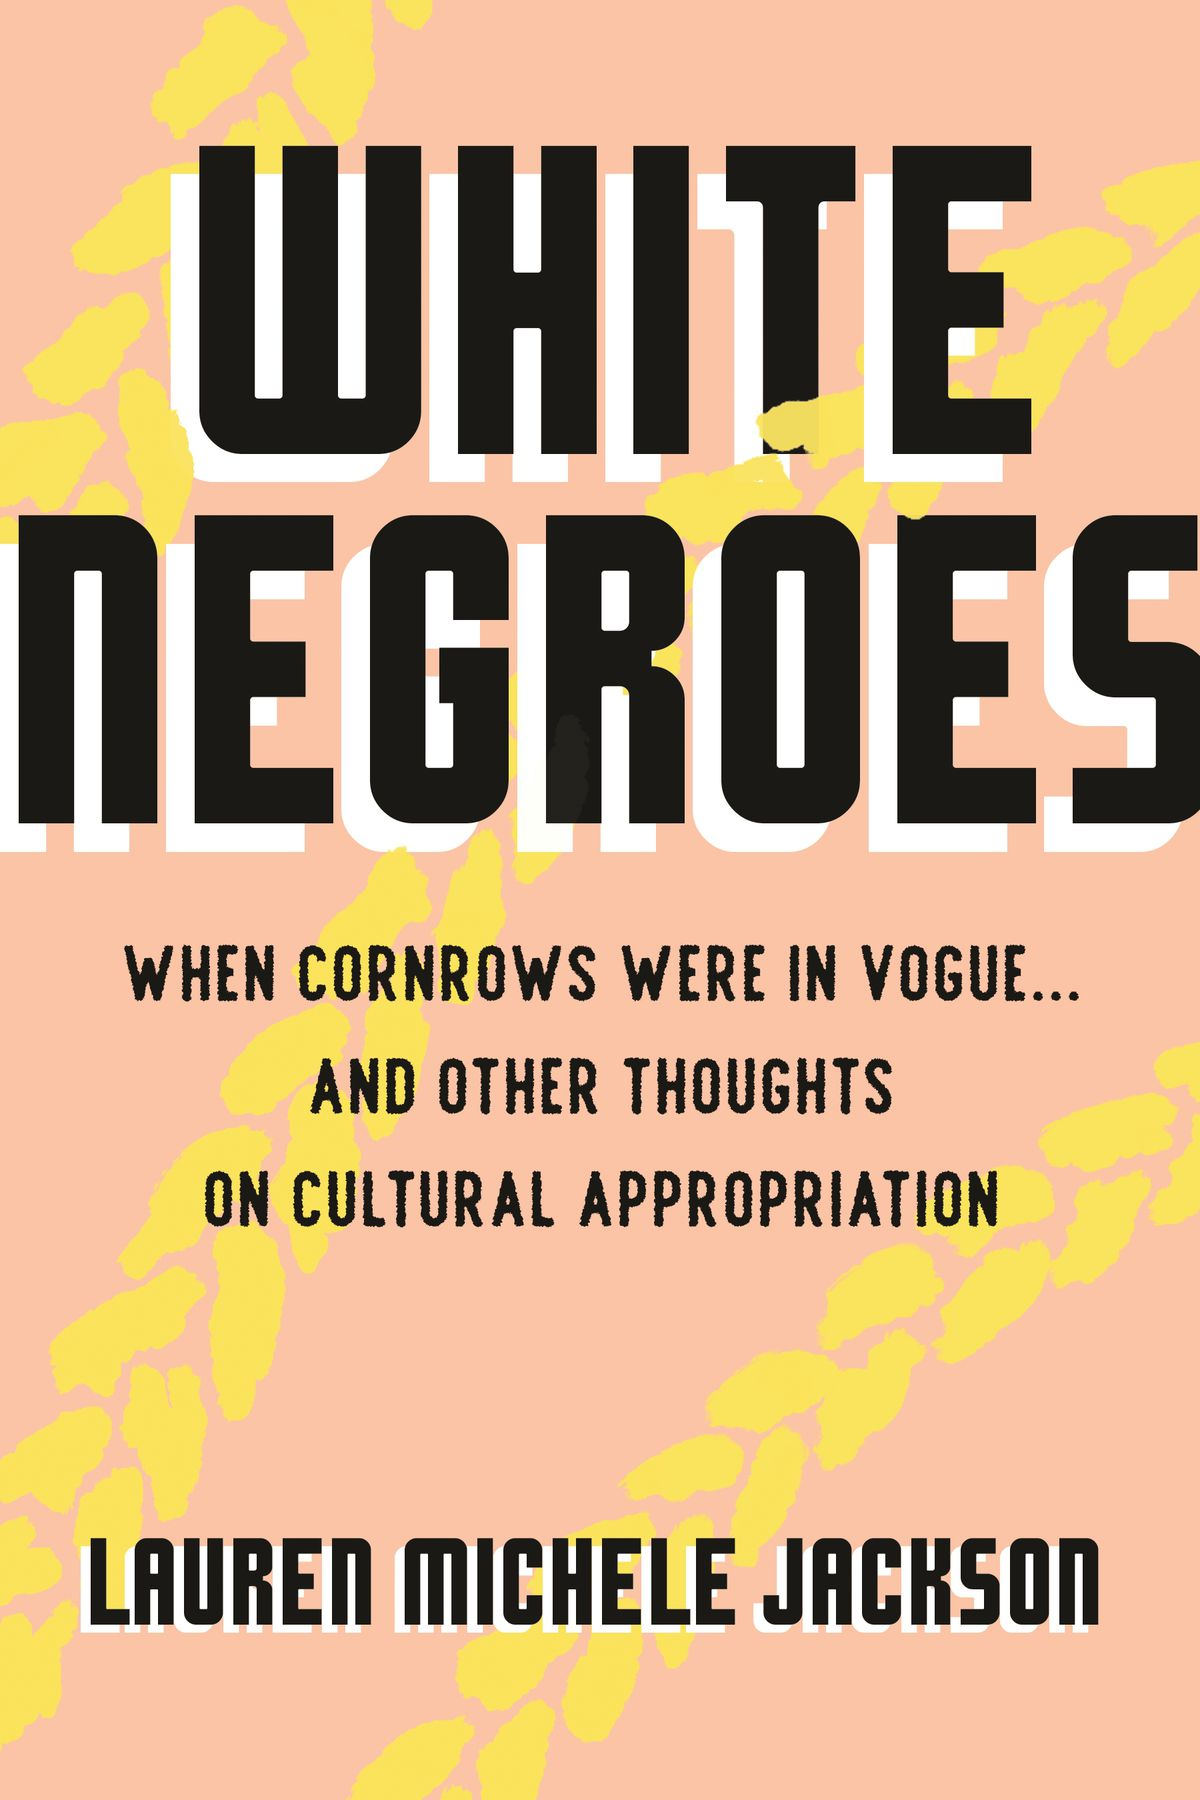 The book cover for White Negroes by Lauren Michele Jackson